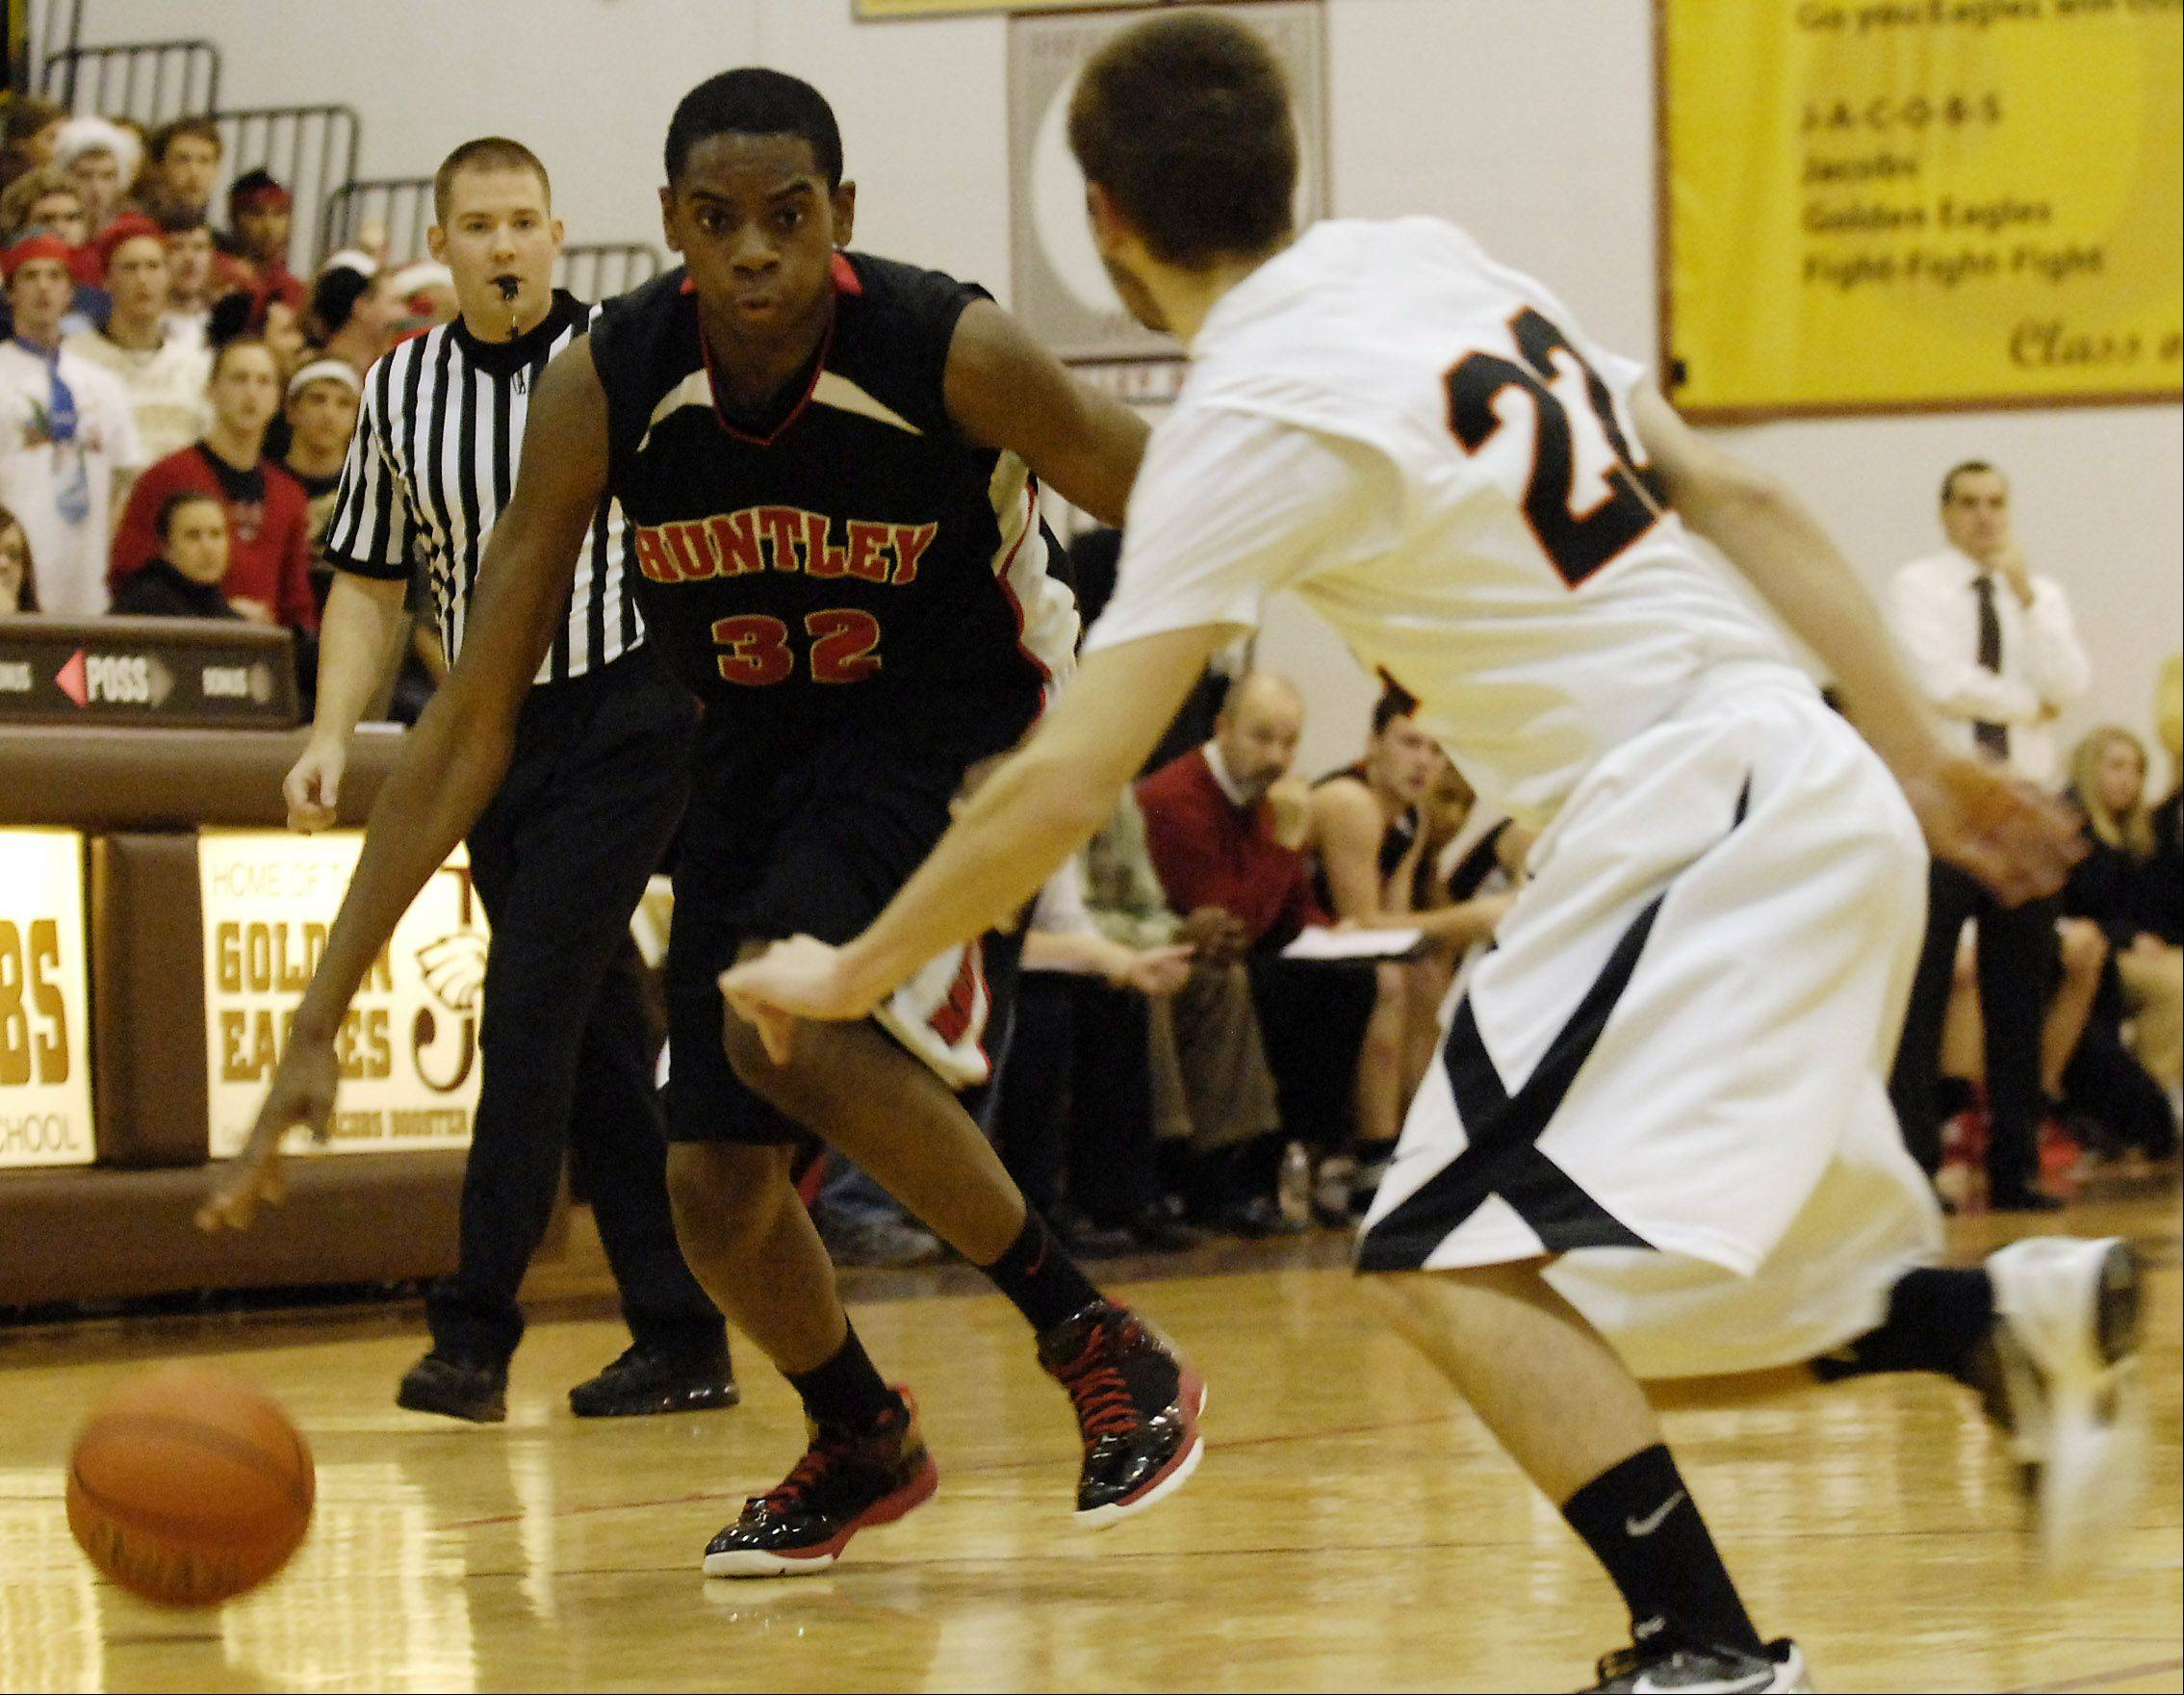 Huntley's Amanze Egekeze drives to the basket against Crystal Lake Central's Brad Knoeppel.